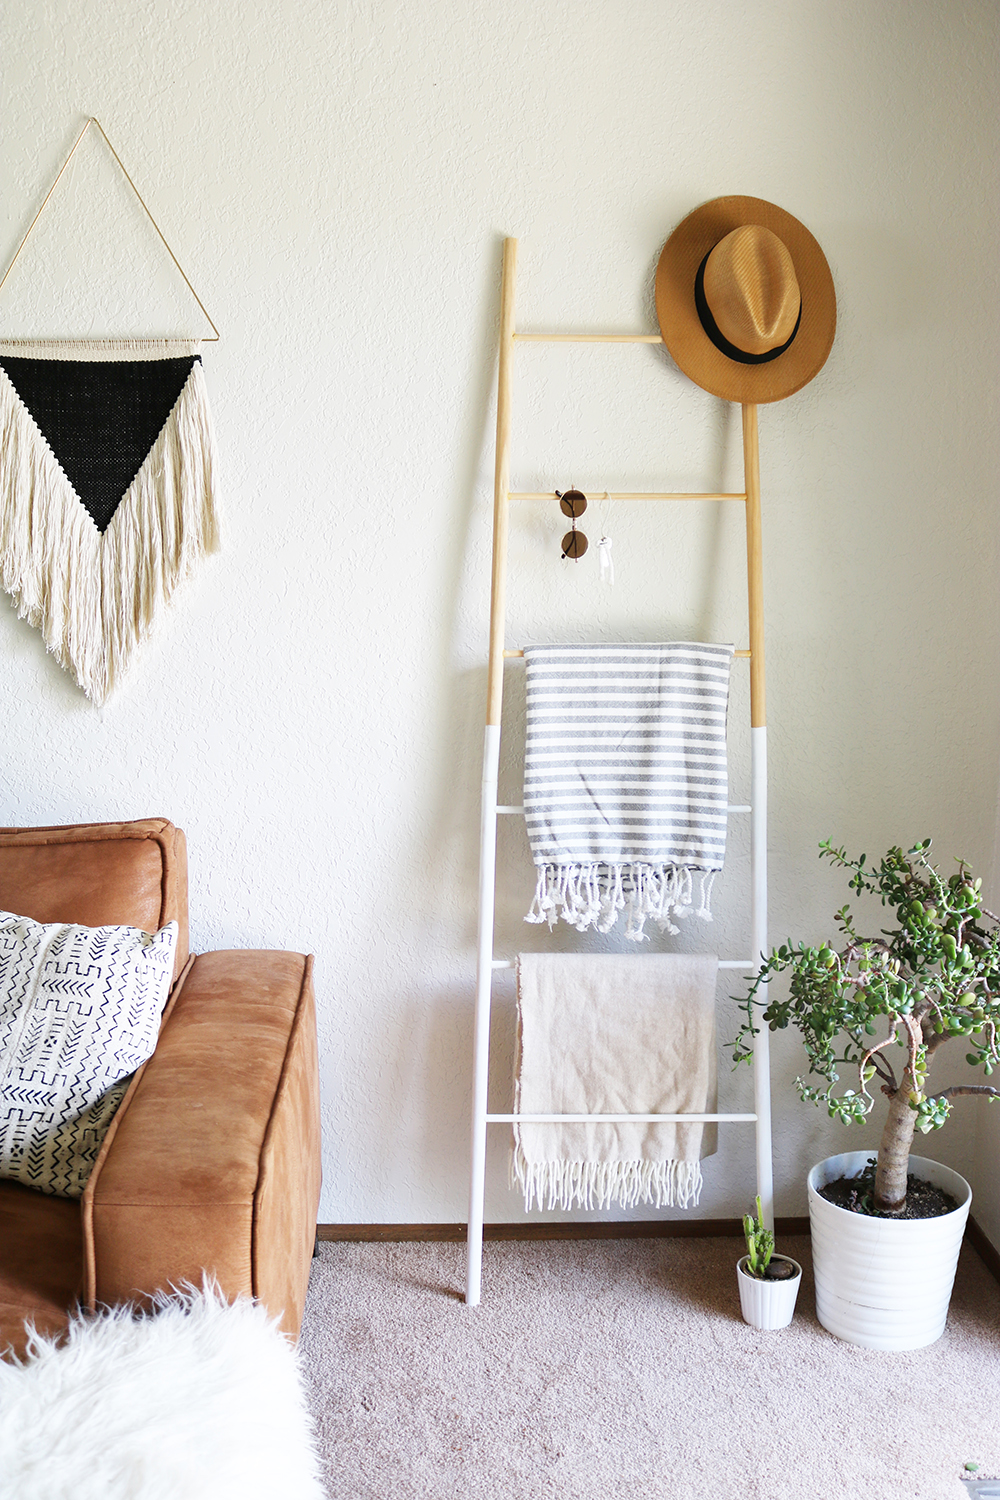 Dowel Ladder With Blanket Hat Plant White Legs Sunglasses Leaning Against Wall